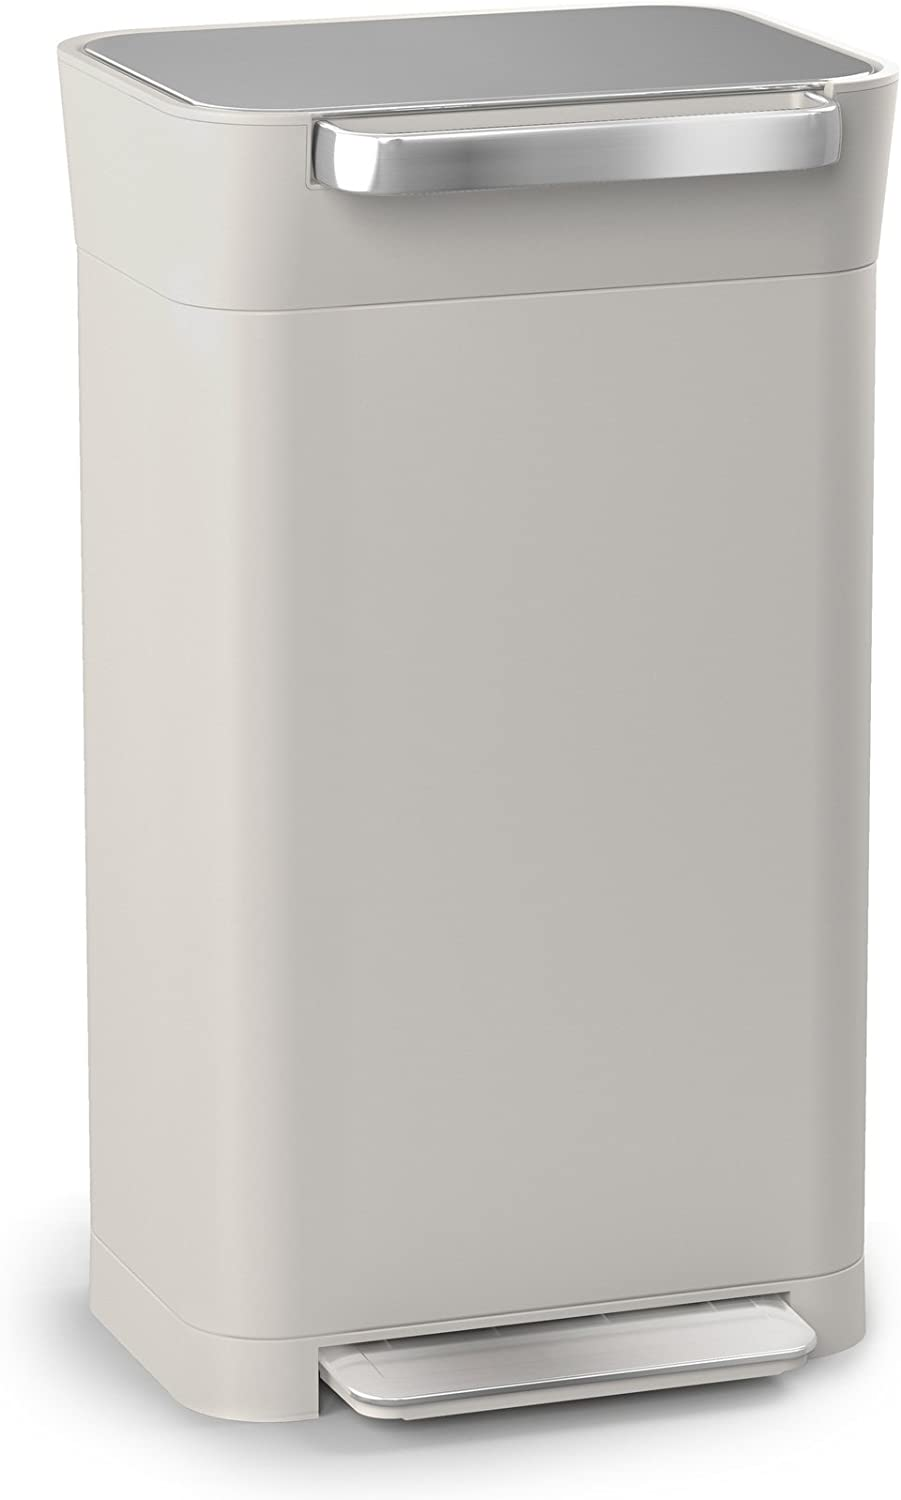 Joseph Joseph 30036 Intelligent Waste Titan Trash Can Compactor, 8 gallon/30 liter, Stone